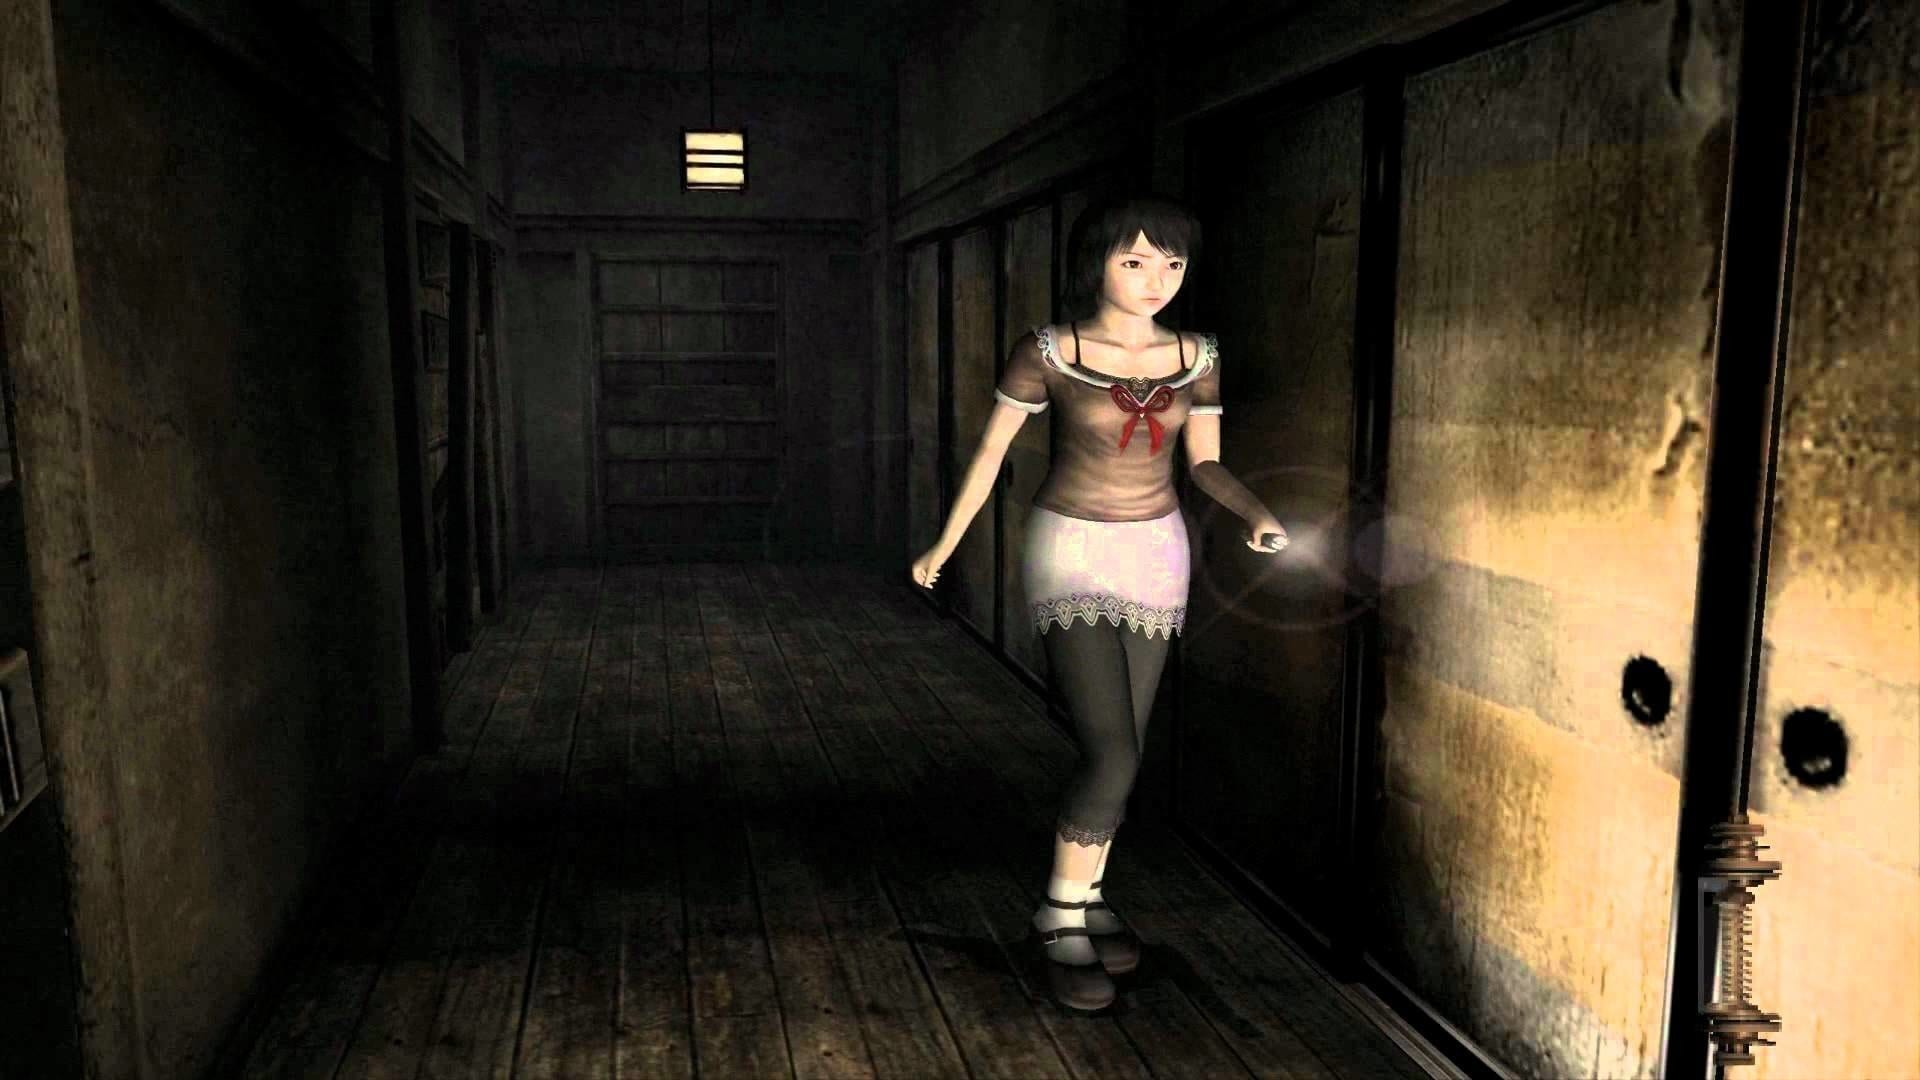 A game-play screenshot from the Fatal Frame franchise